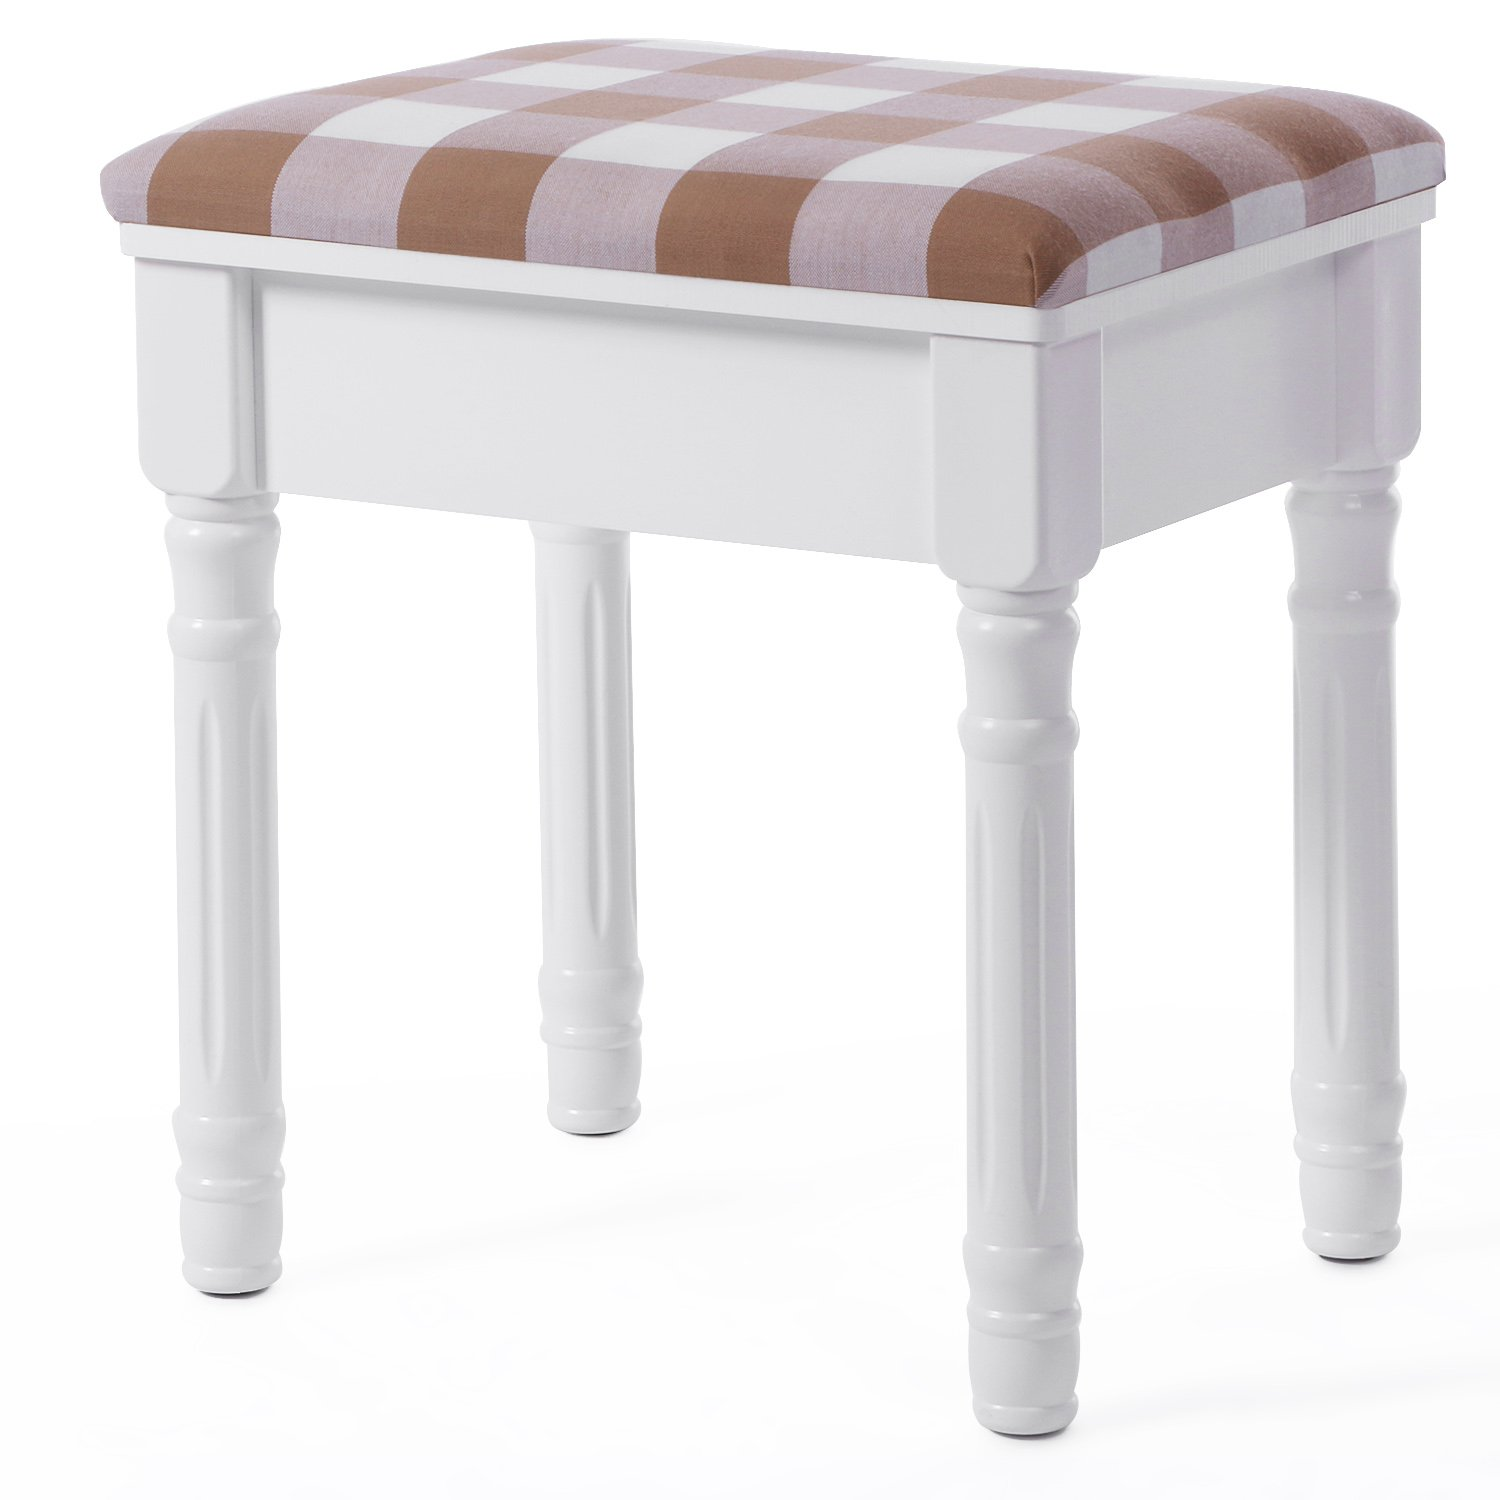 BEWISHOME Vanity Stool Makeup Table Bench with Upholstered Seat for Bedroom Closet Dressing Room, White FSD02W